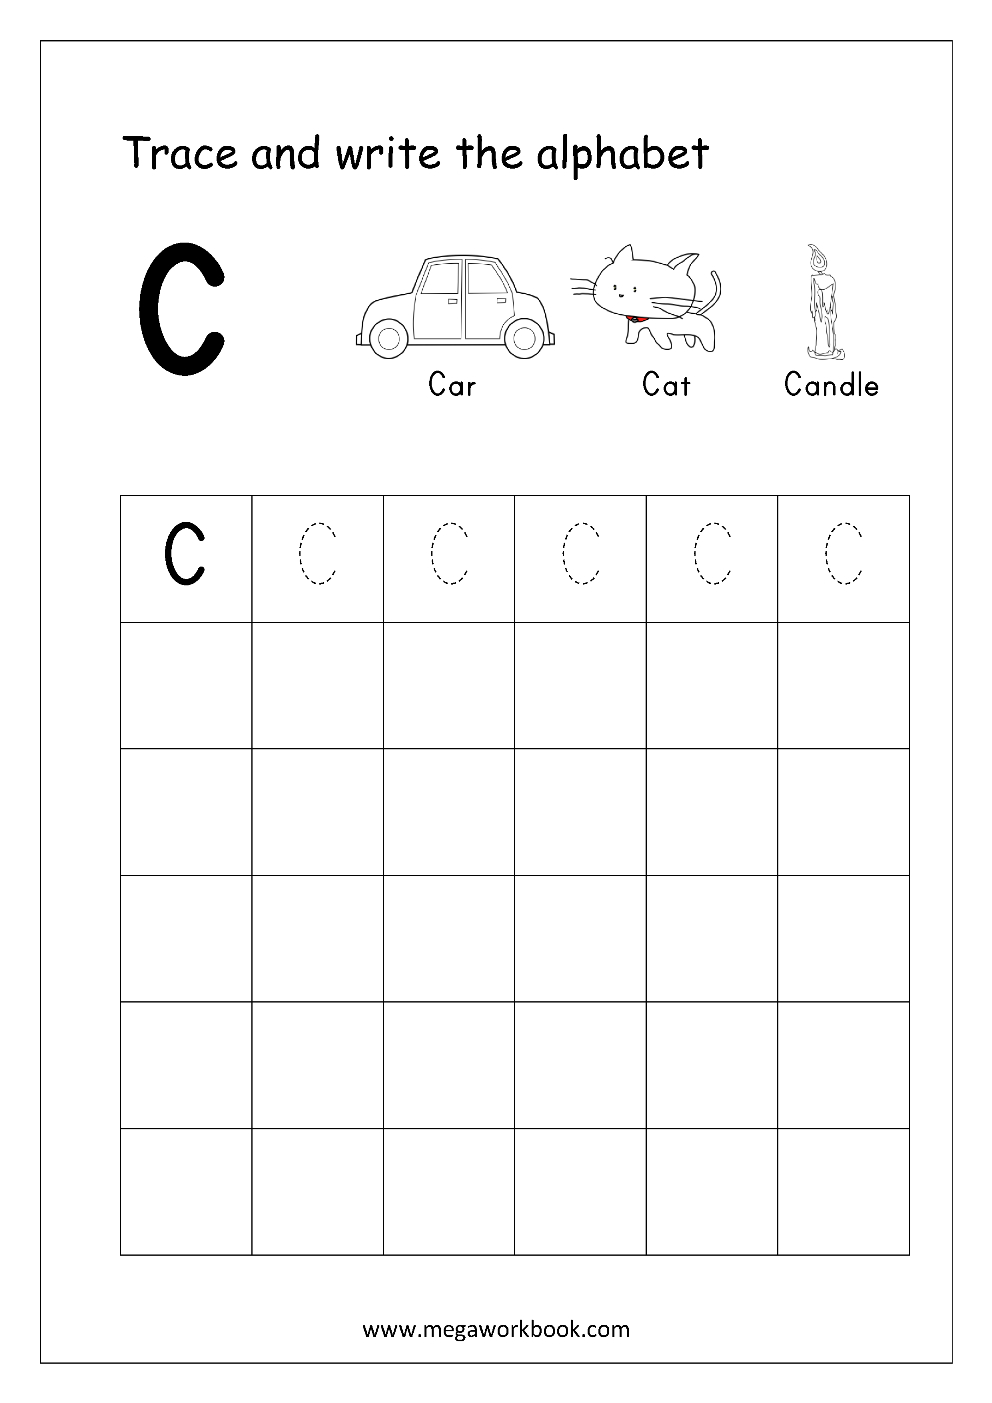 Free English Worksheets - Alphabet Writing (Capital Letters intended for Alphabet Worksheets Writing